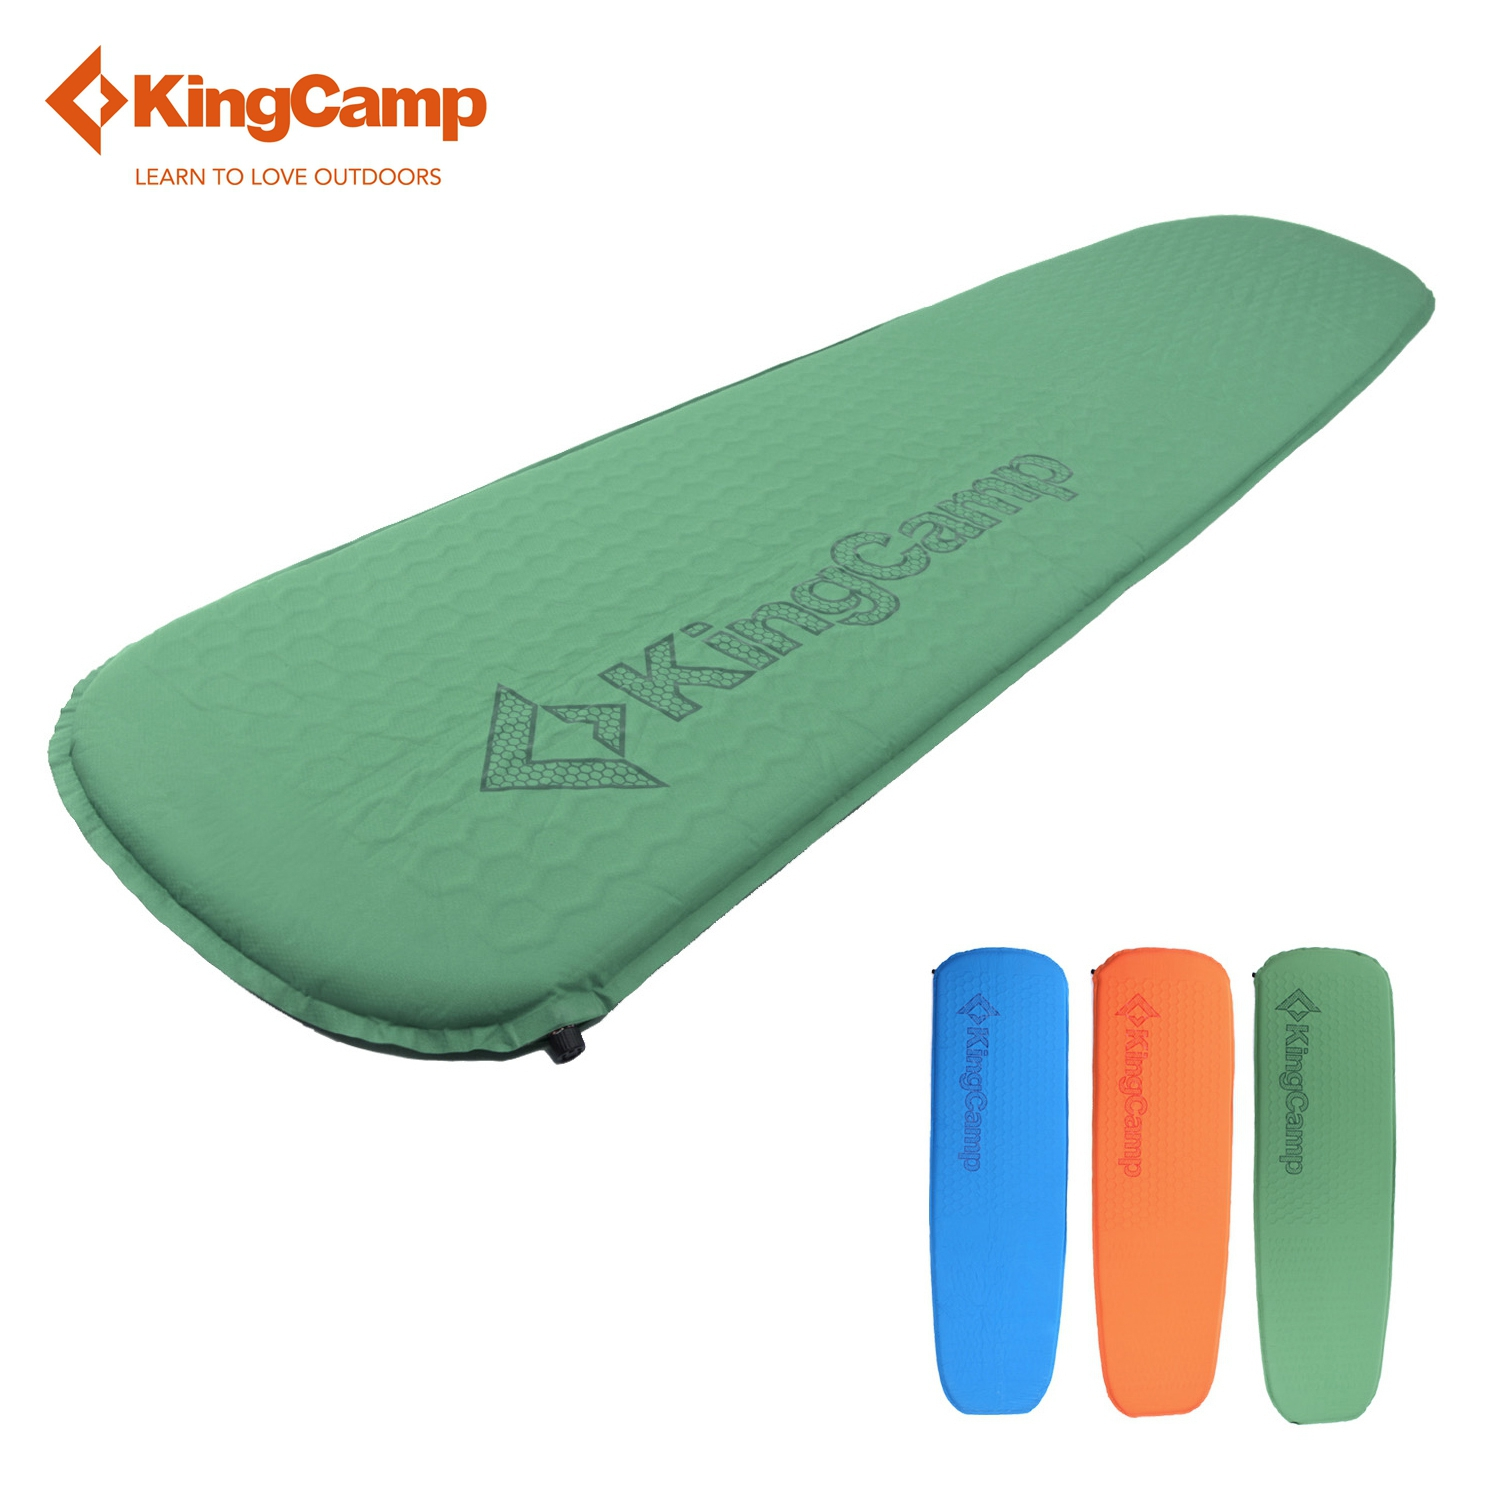 Kingcamp Deluxe Camping Pad Ultralight Sleeping Pad